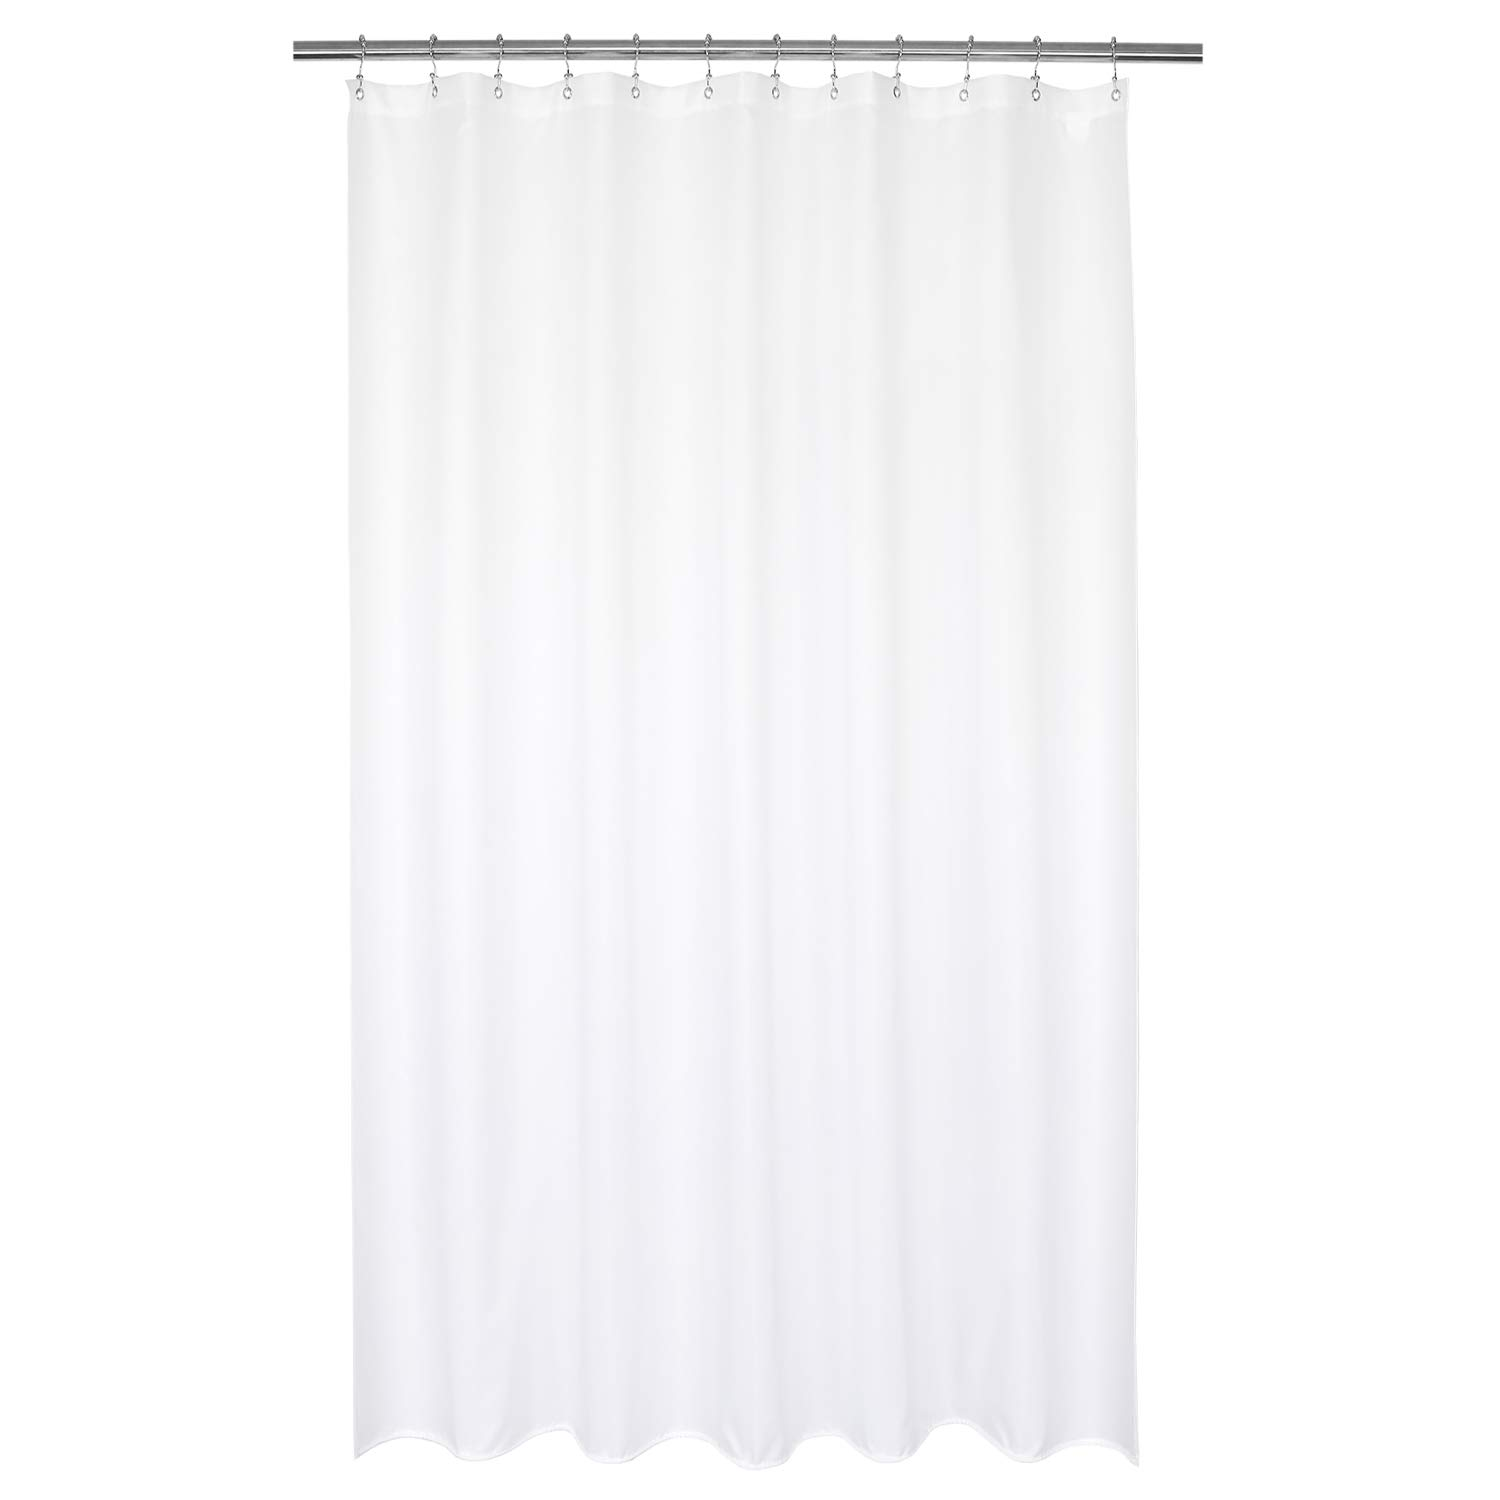 Barossa Design Waterproof Extra Long Shower Curtain or Liner 72 x 84 inches, Hotel Quality, Machine Washable, White, 72x84